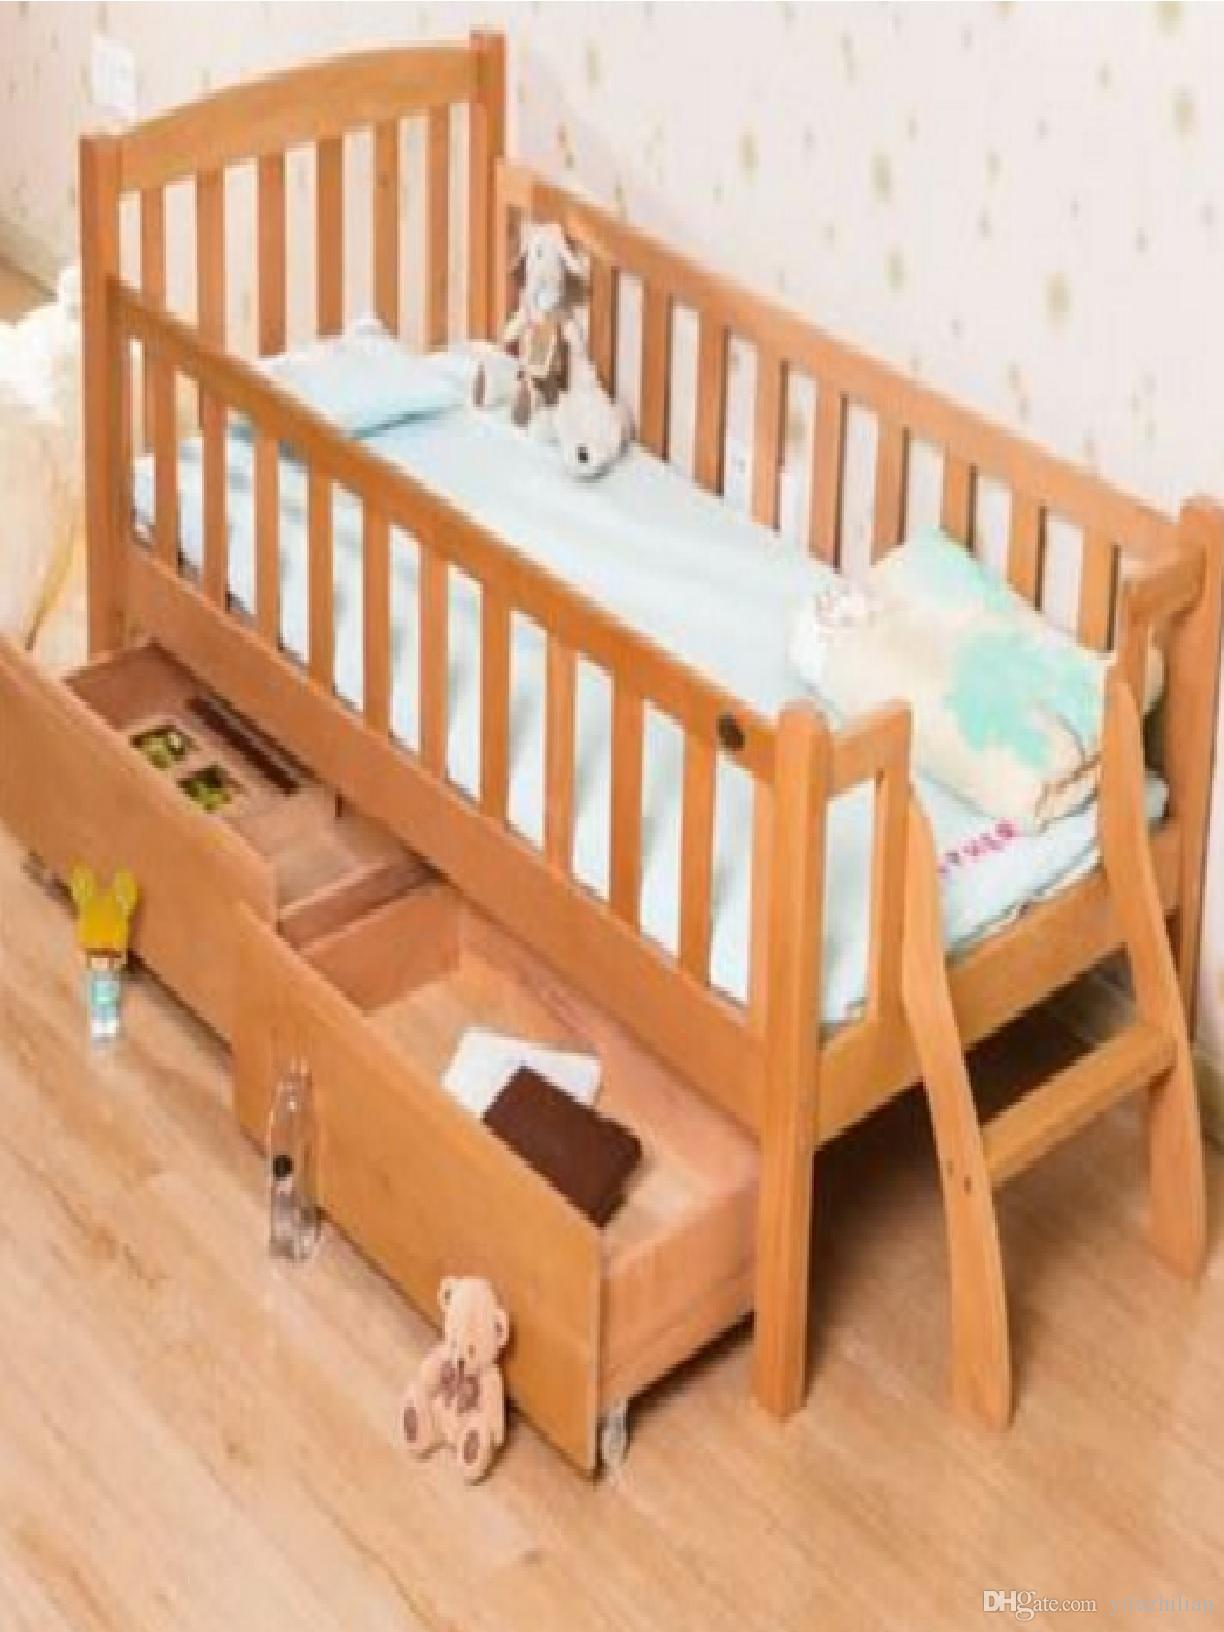 Toys R Us Beds | Cheap Cribs | Amazon Baby Cribs